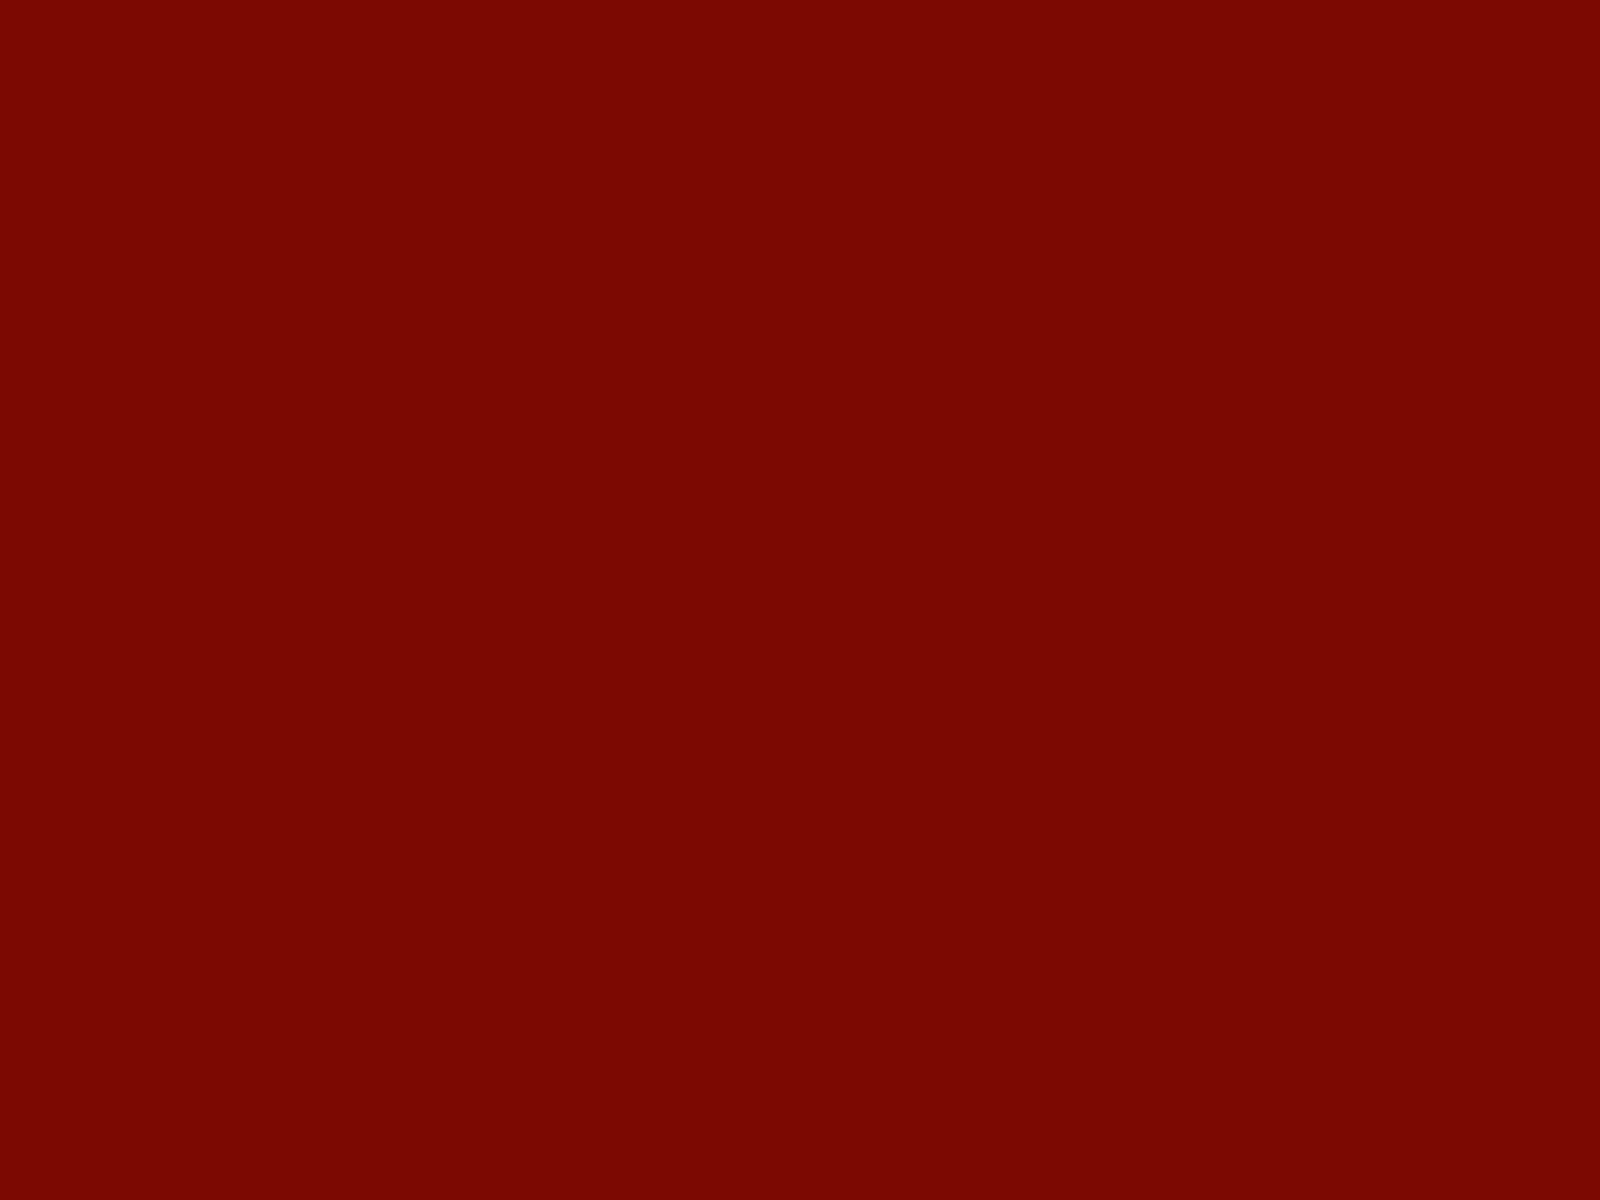 1600x1200 Barn Red Solid Color Background